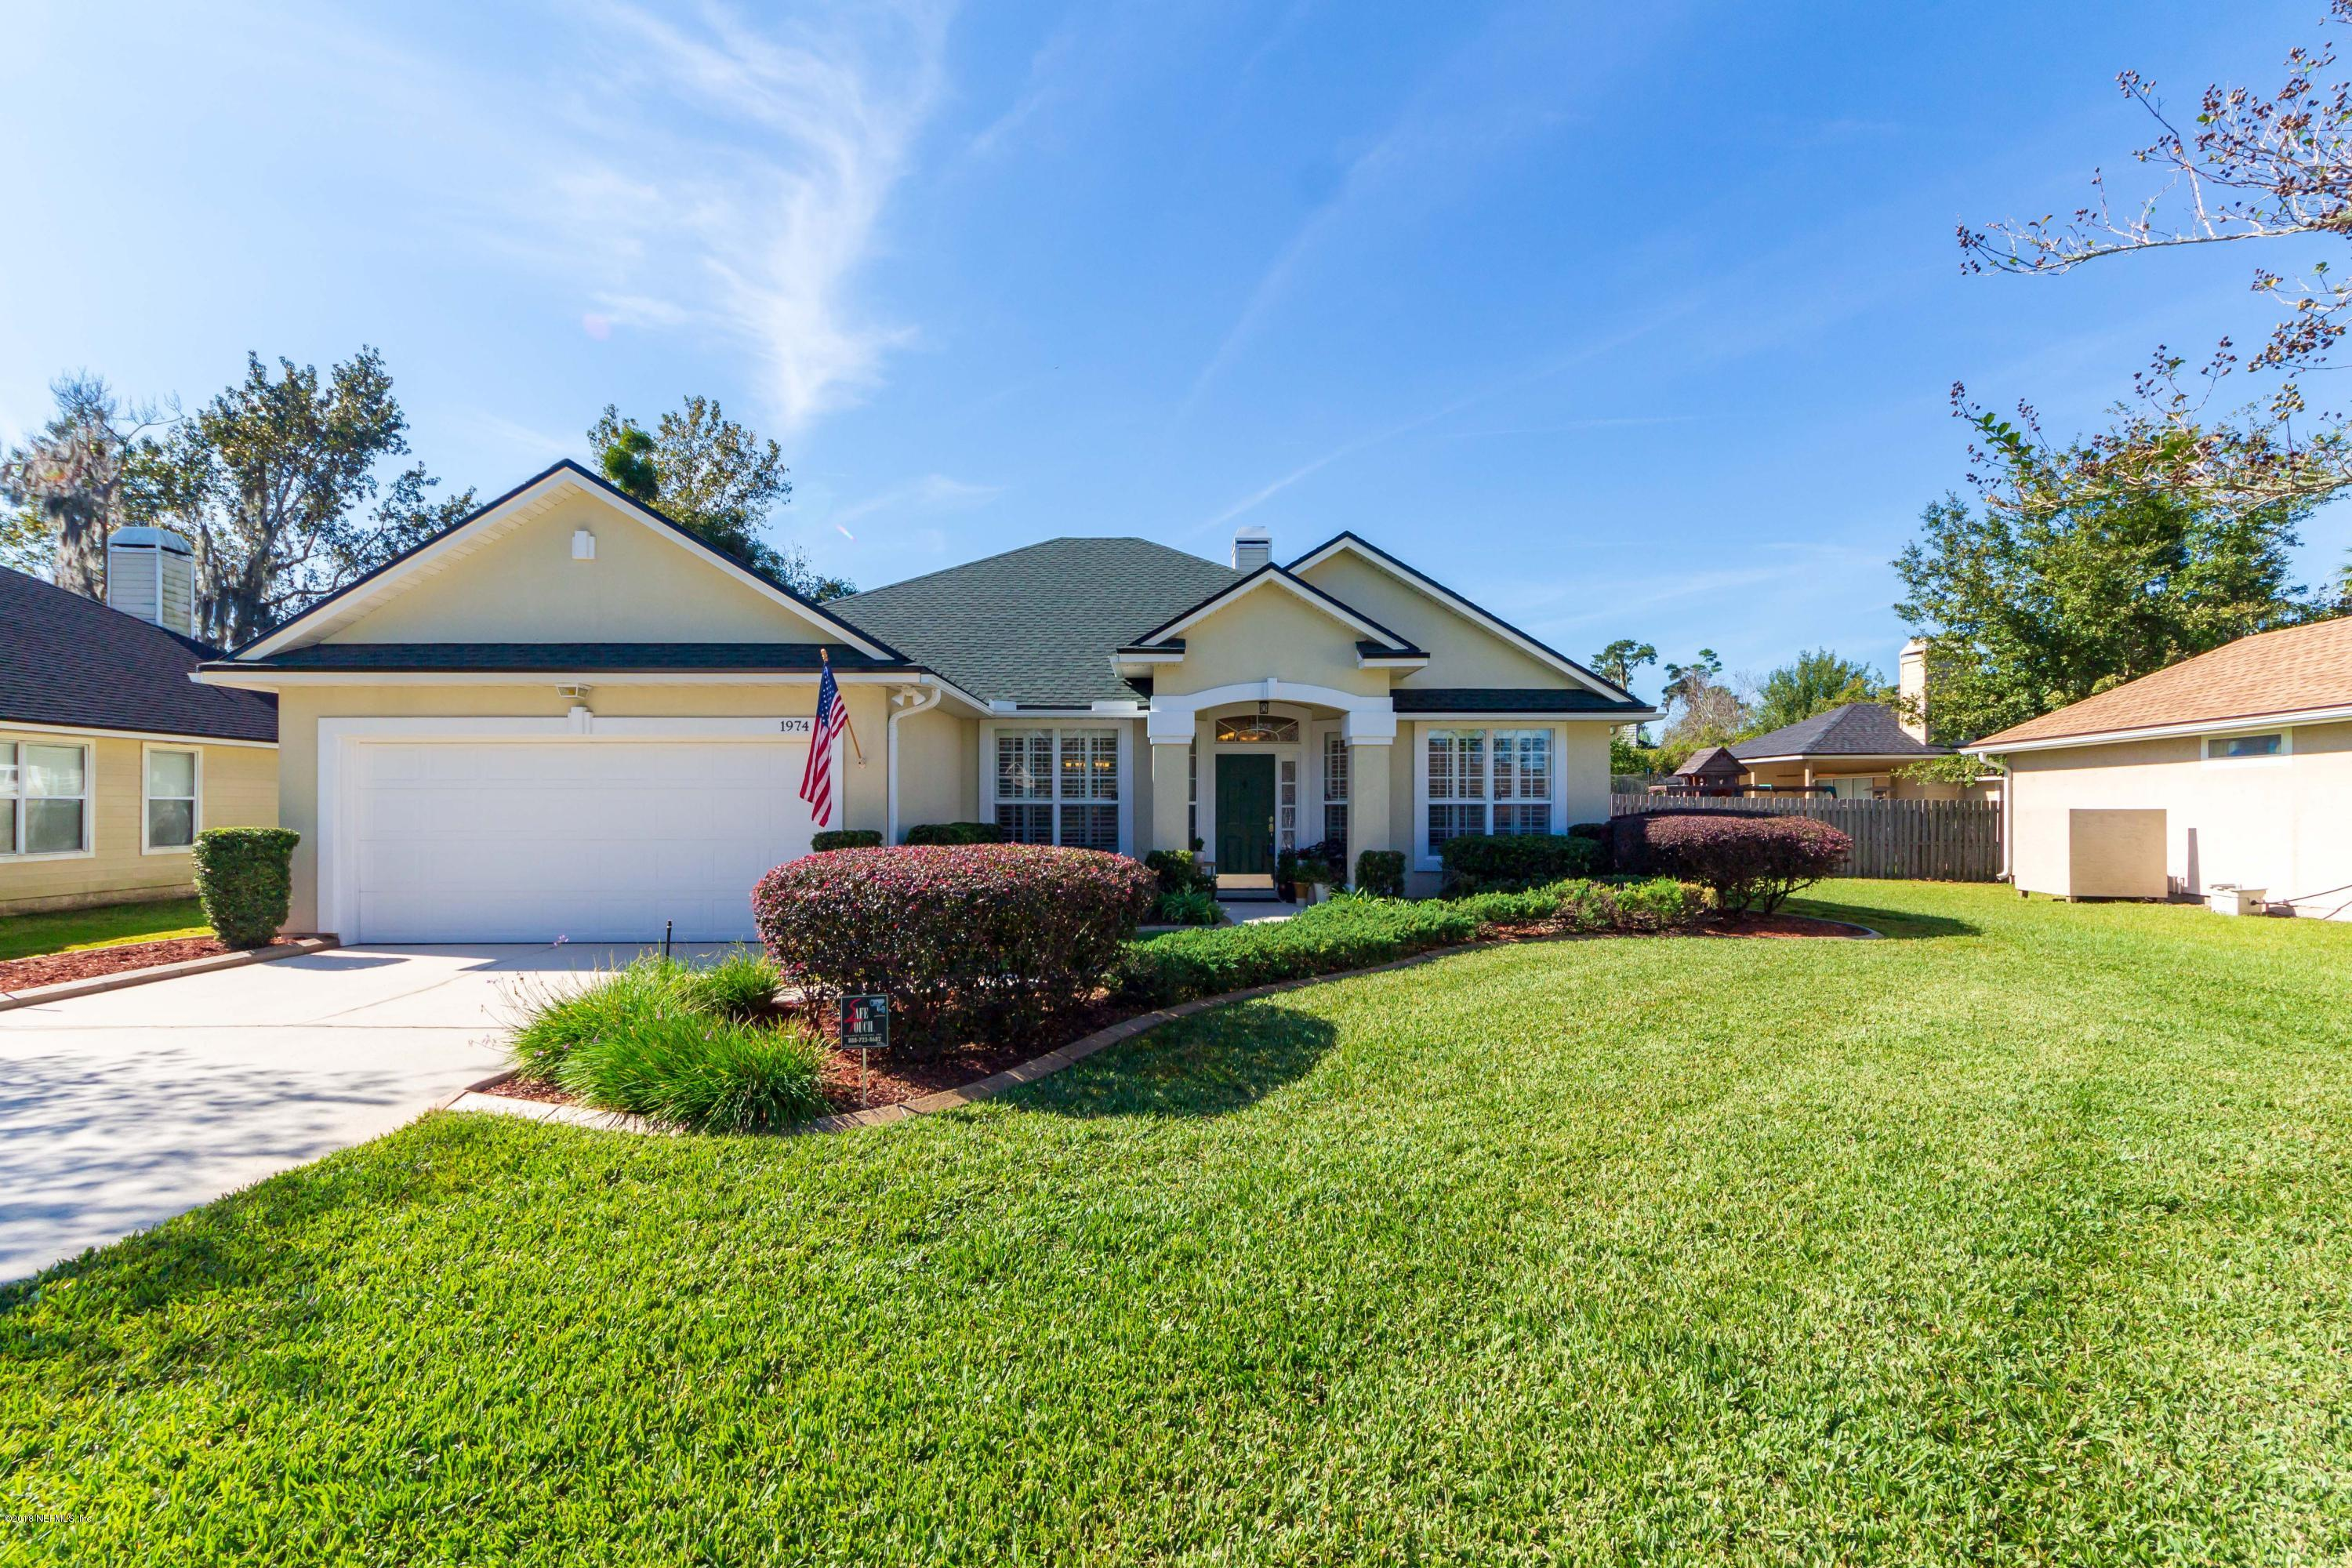 1974 PROTECTION, ORANGE PARK, FLORIDA 32003, 4 Bedrooms Bedrooms, ,3 BathroomsBathrooms,Residential - single family,For sale,PROTECTION,968147